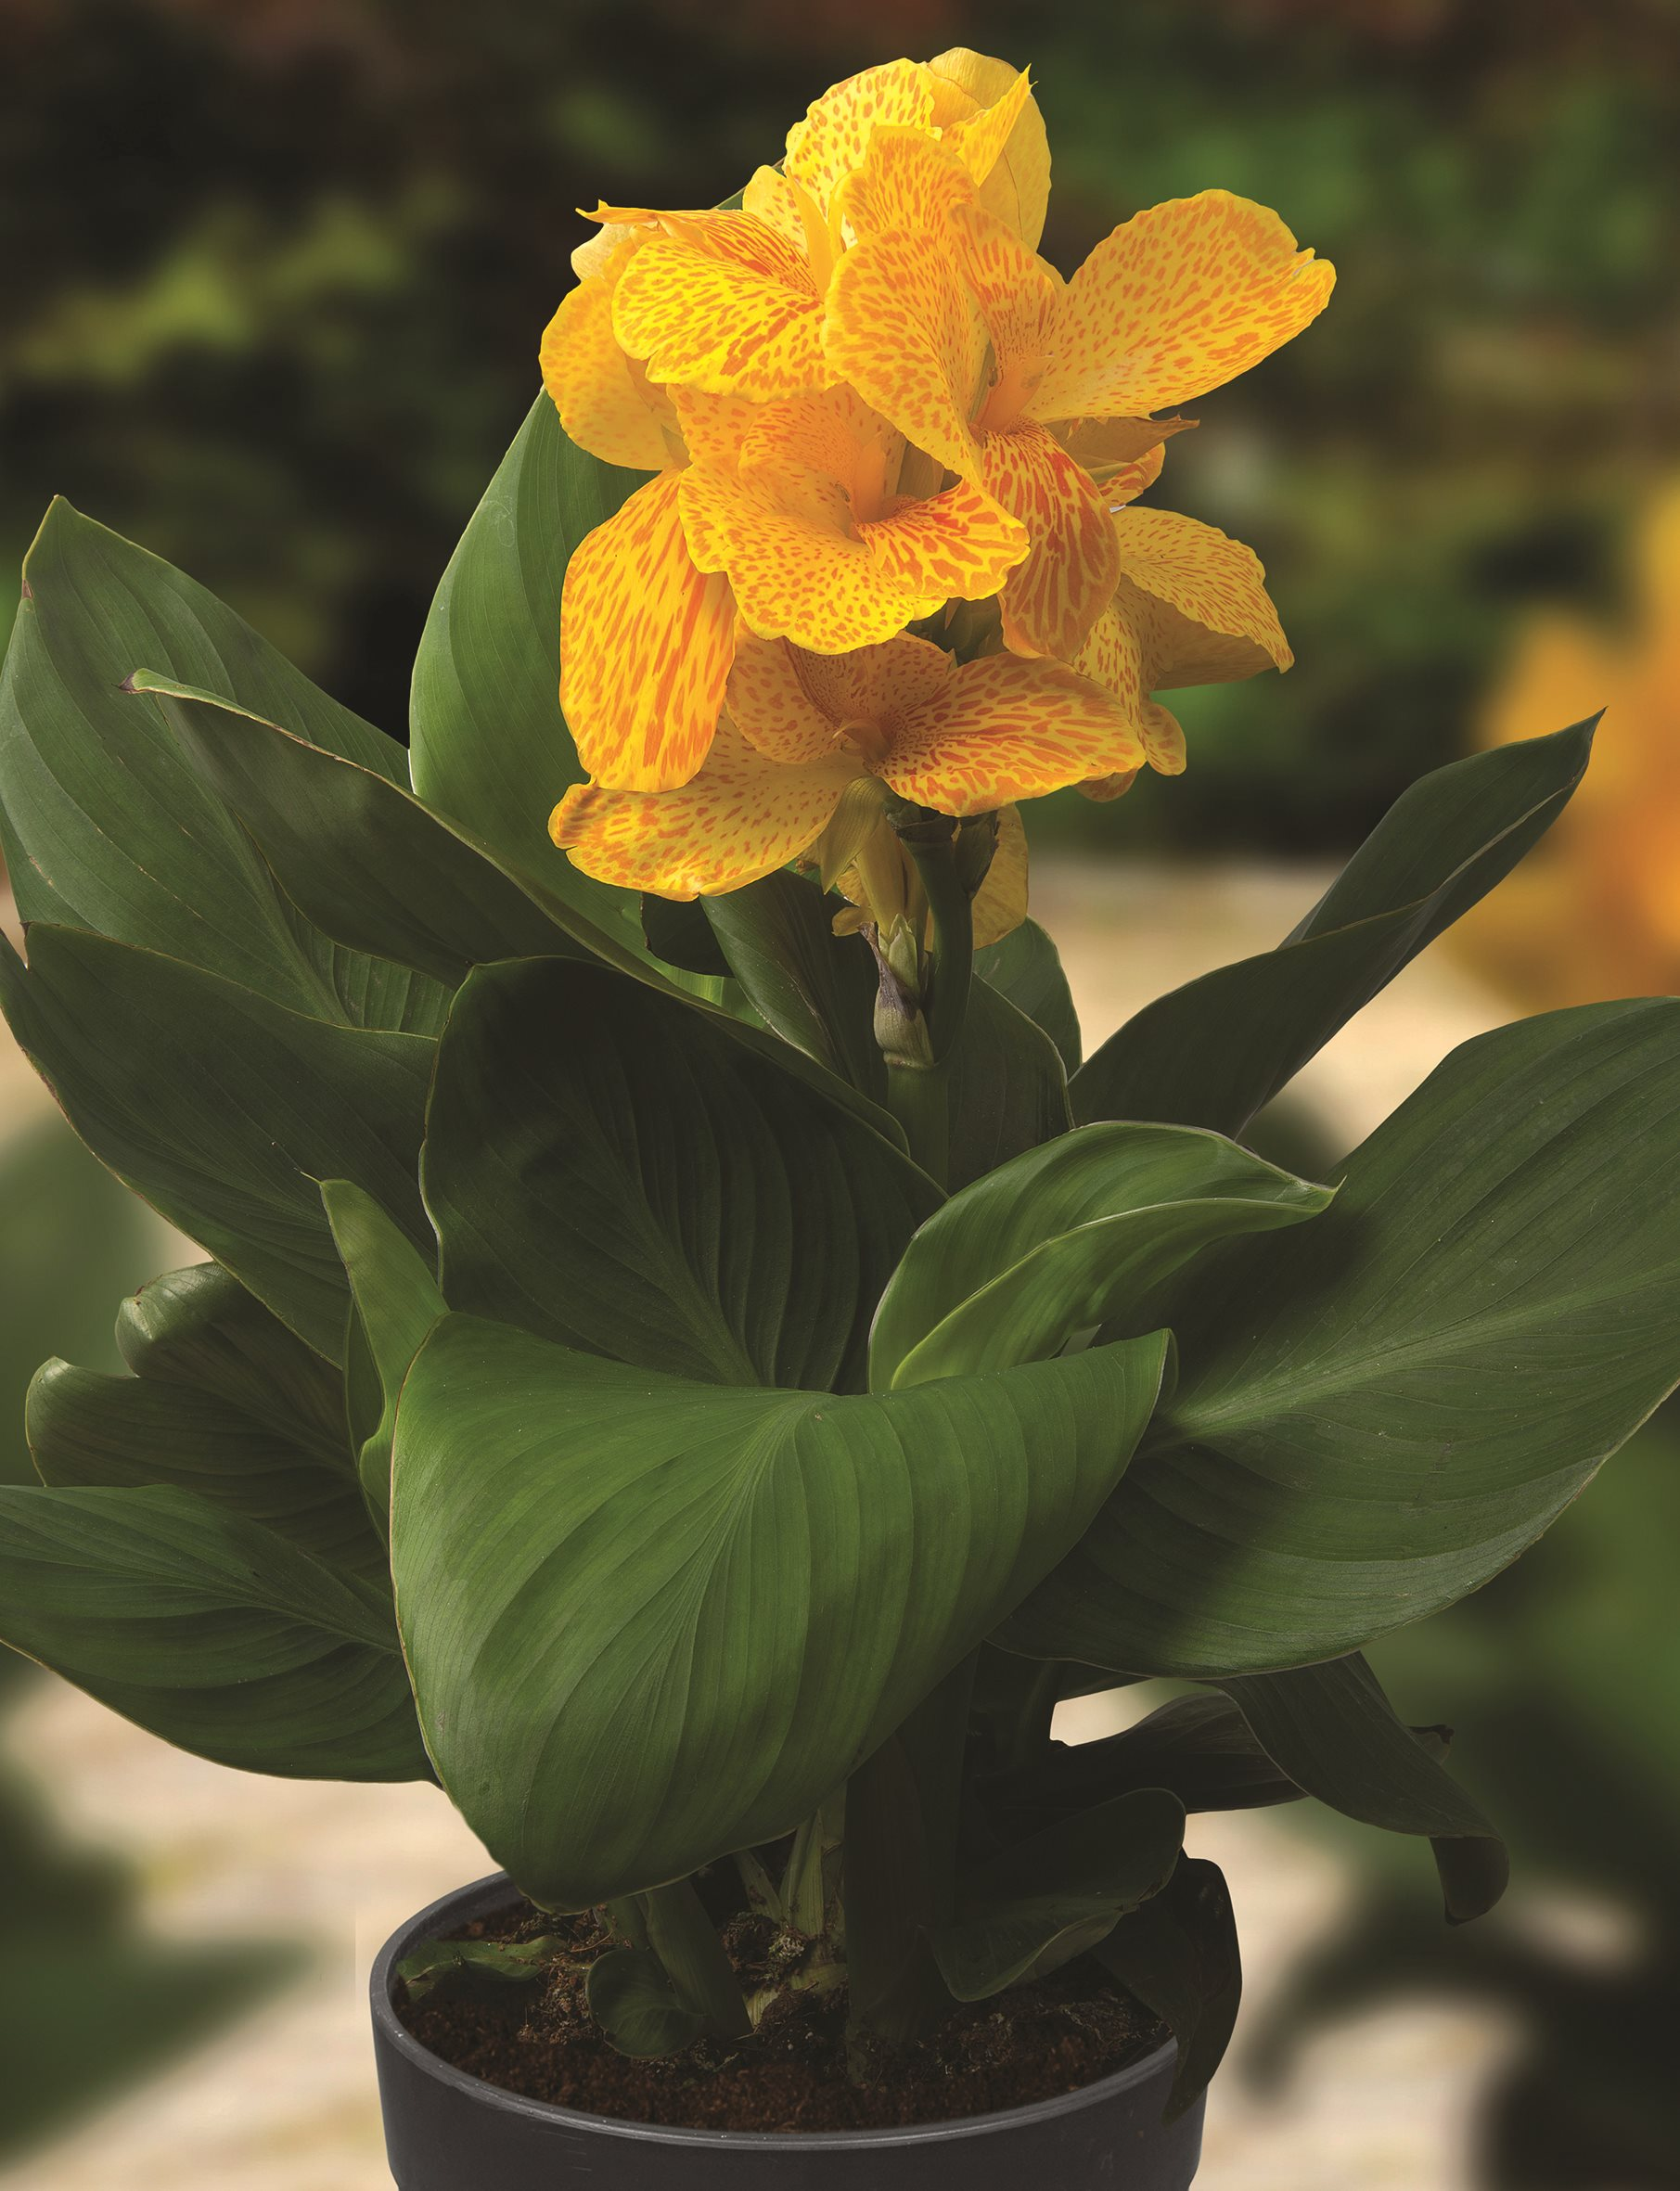 /Images/johnsonnursery/product-images/Canna Cannasol Happy Emily bloom_qodtrmedl.jpg